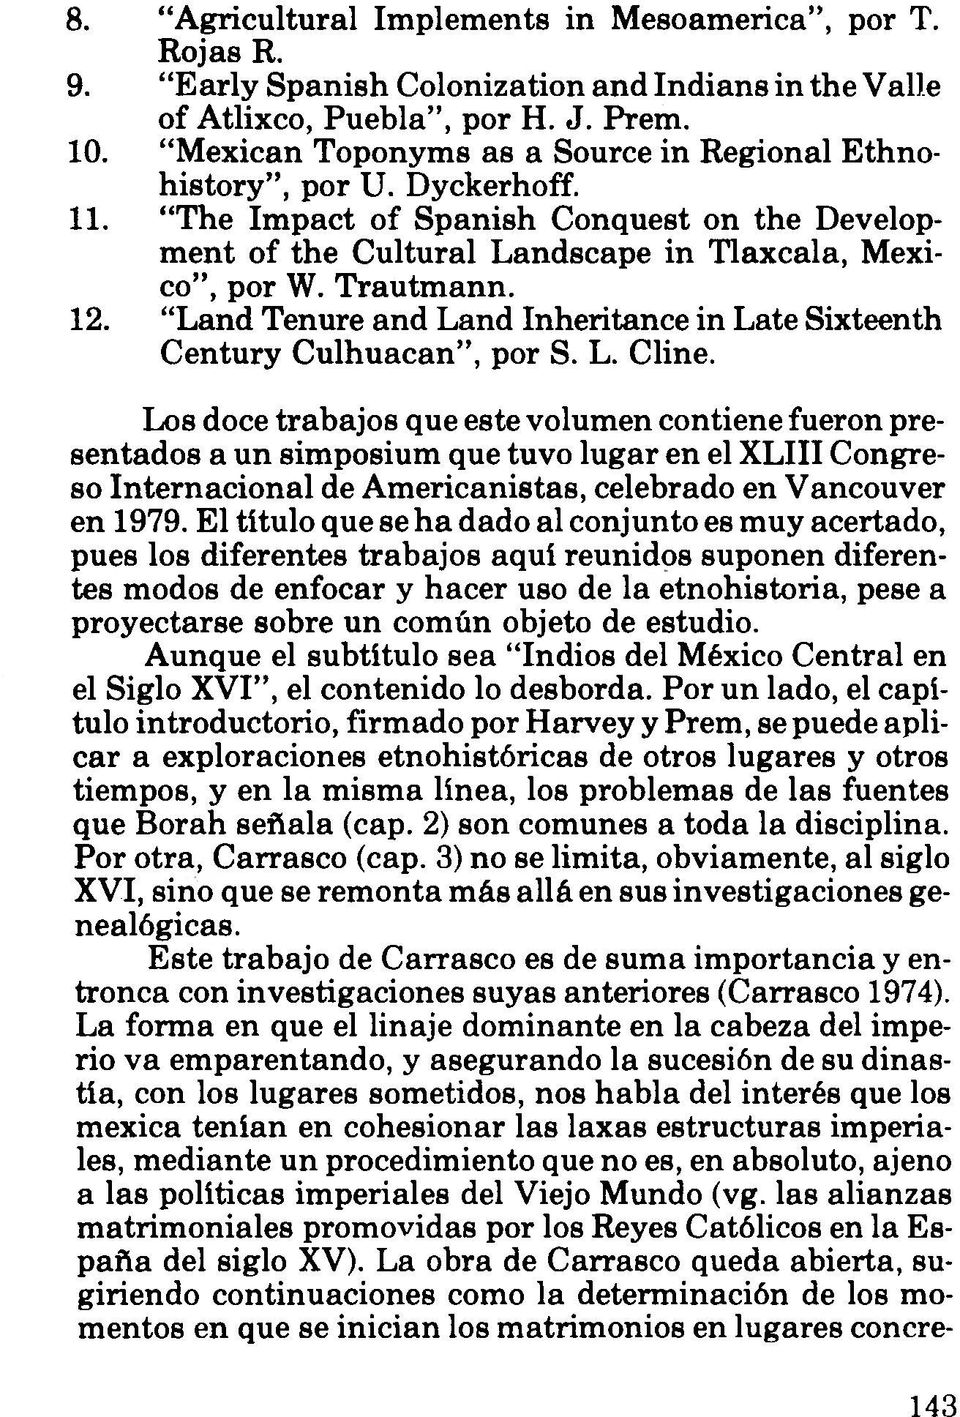 Land Tenure and Land Inheritance in Late Sixteenth Century Culhuacan, por S. L. Cline.